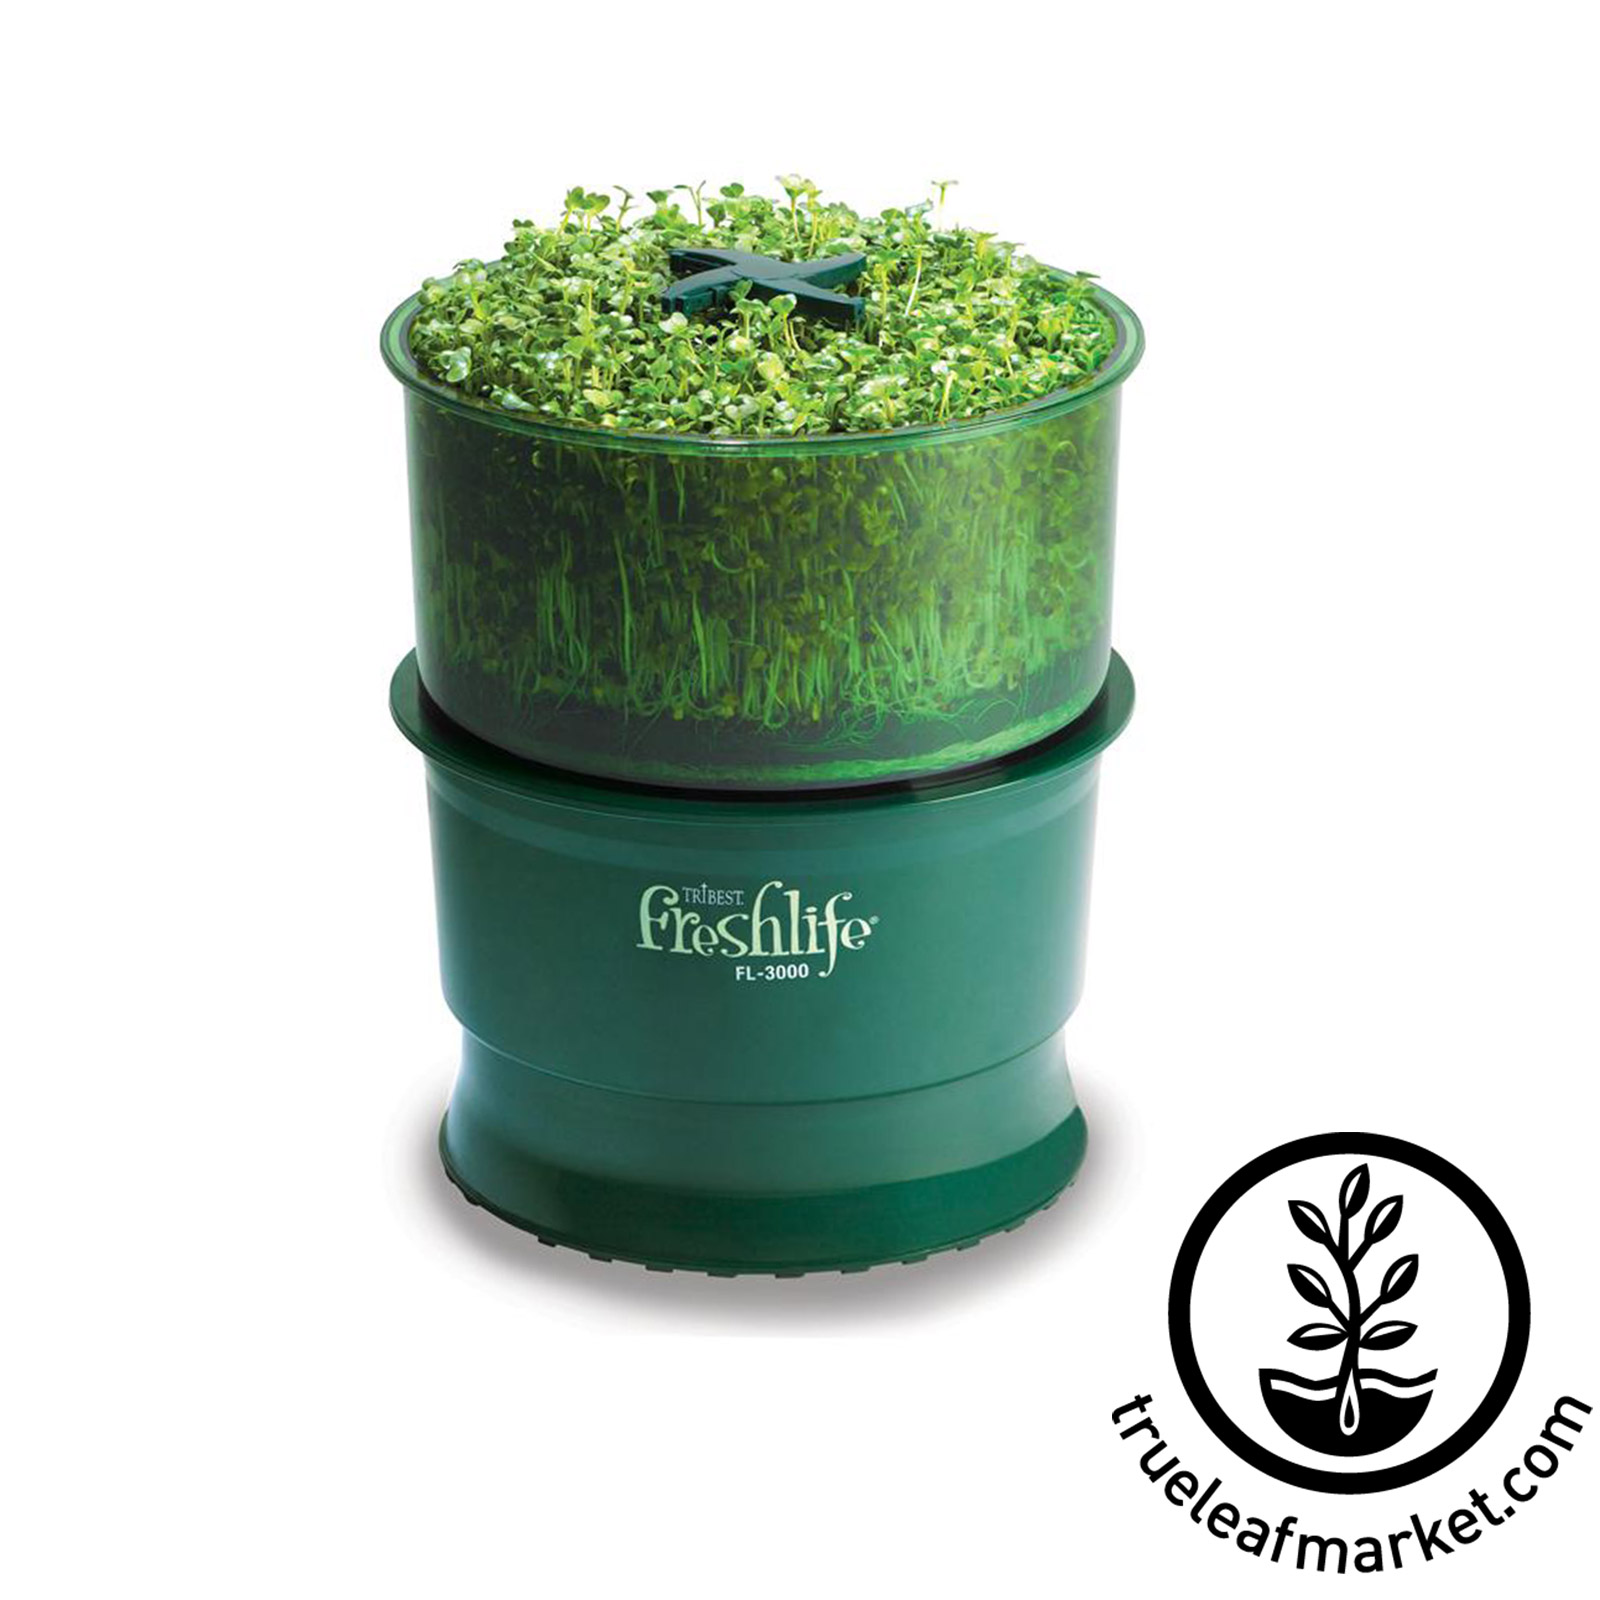 Freshlife Seed Sprouter by Tribest